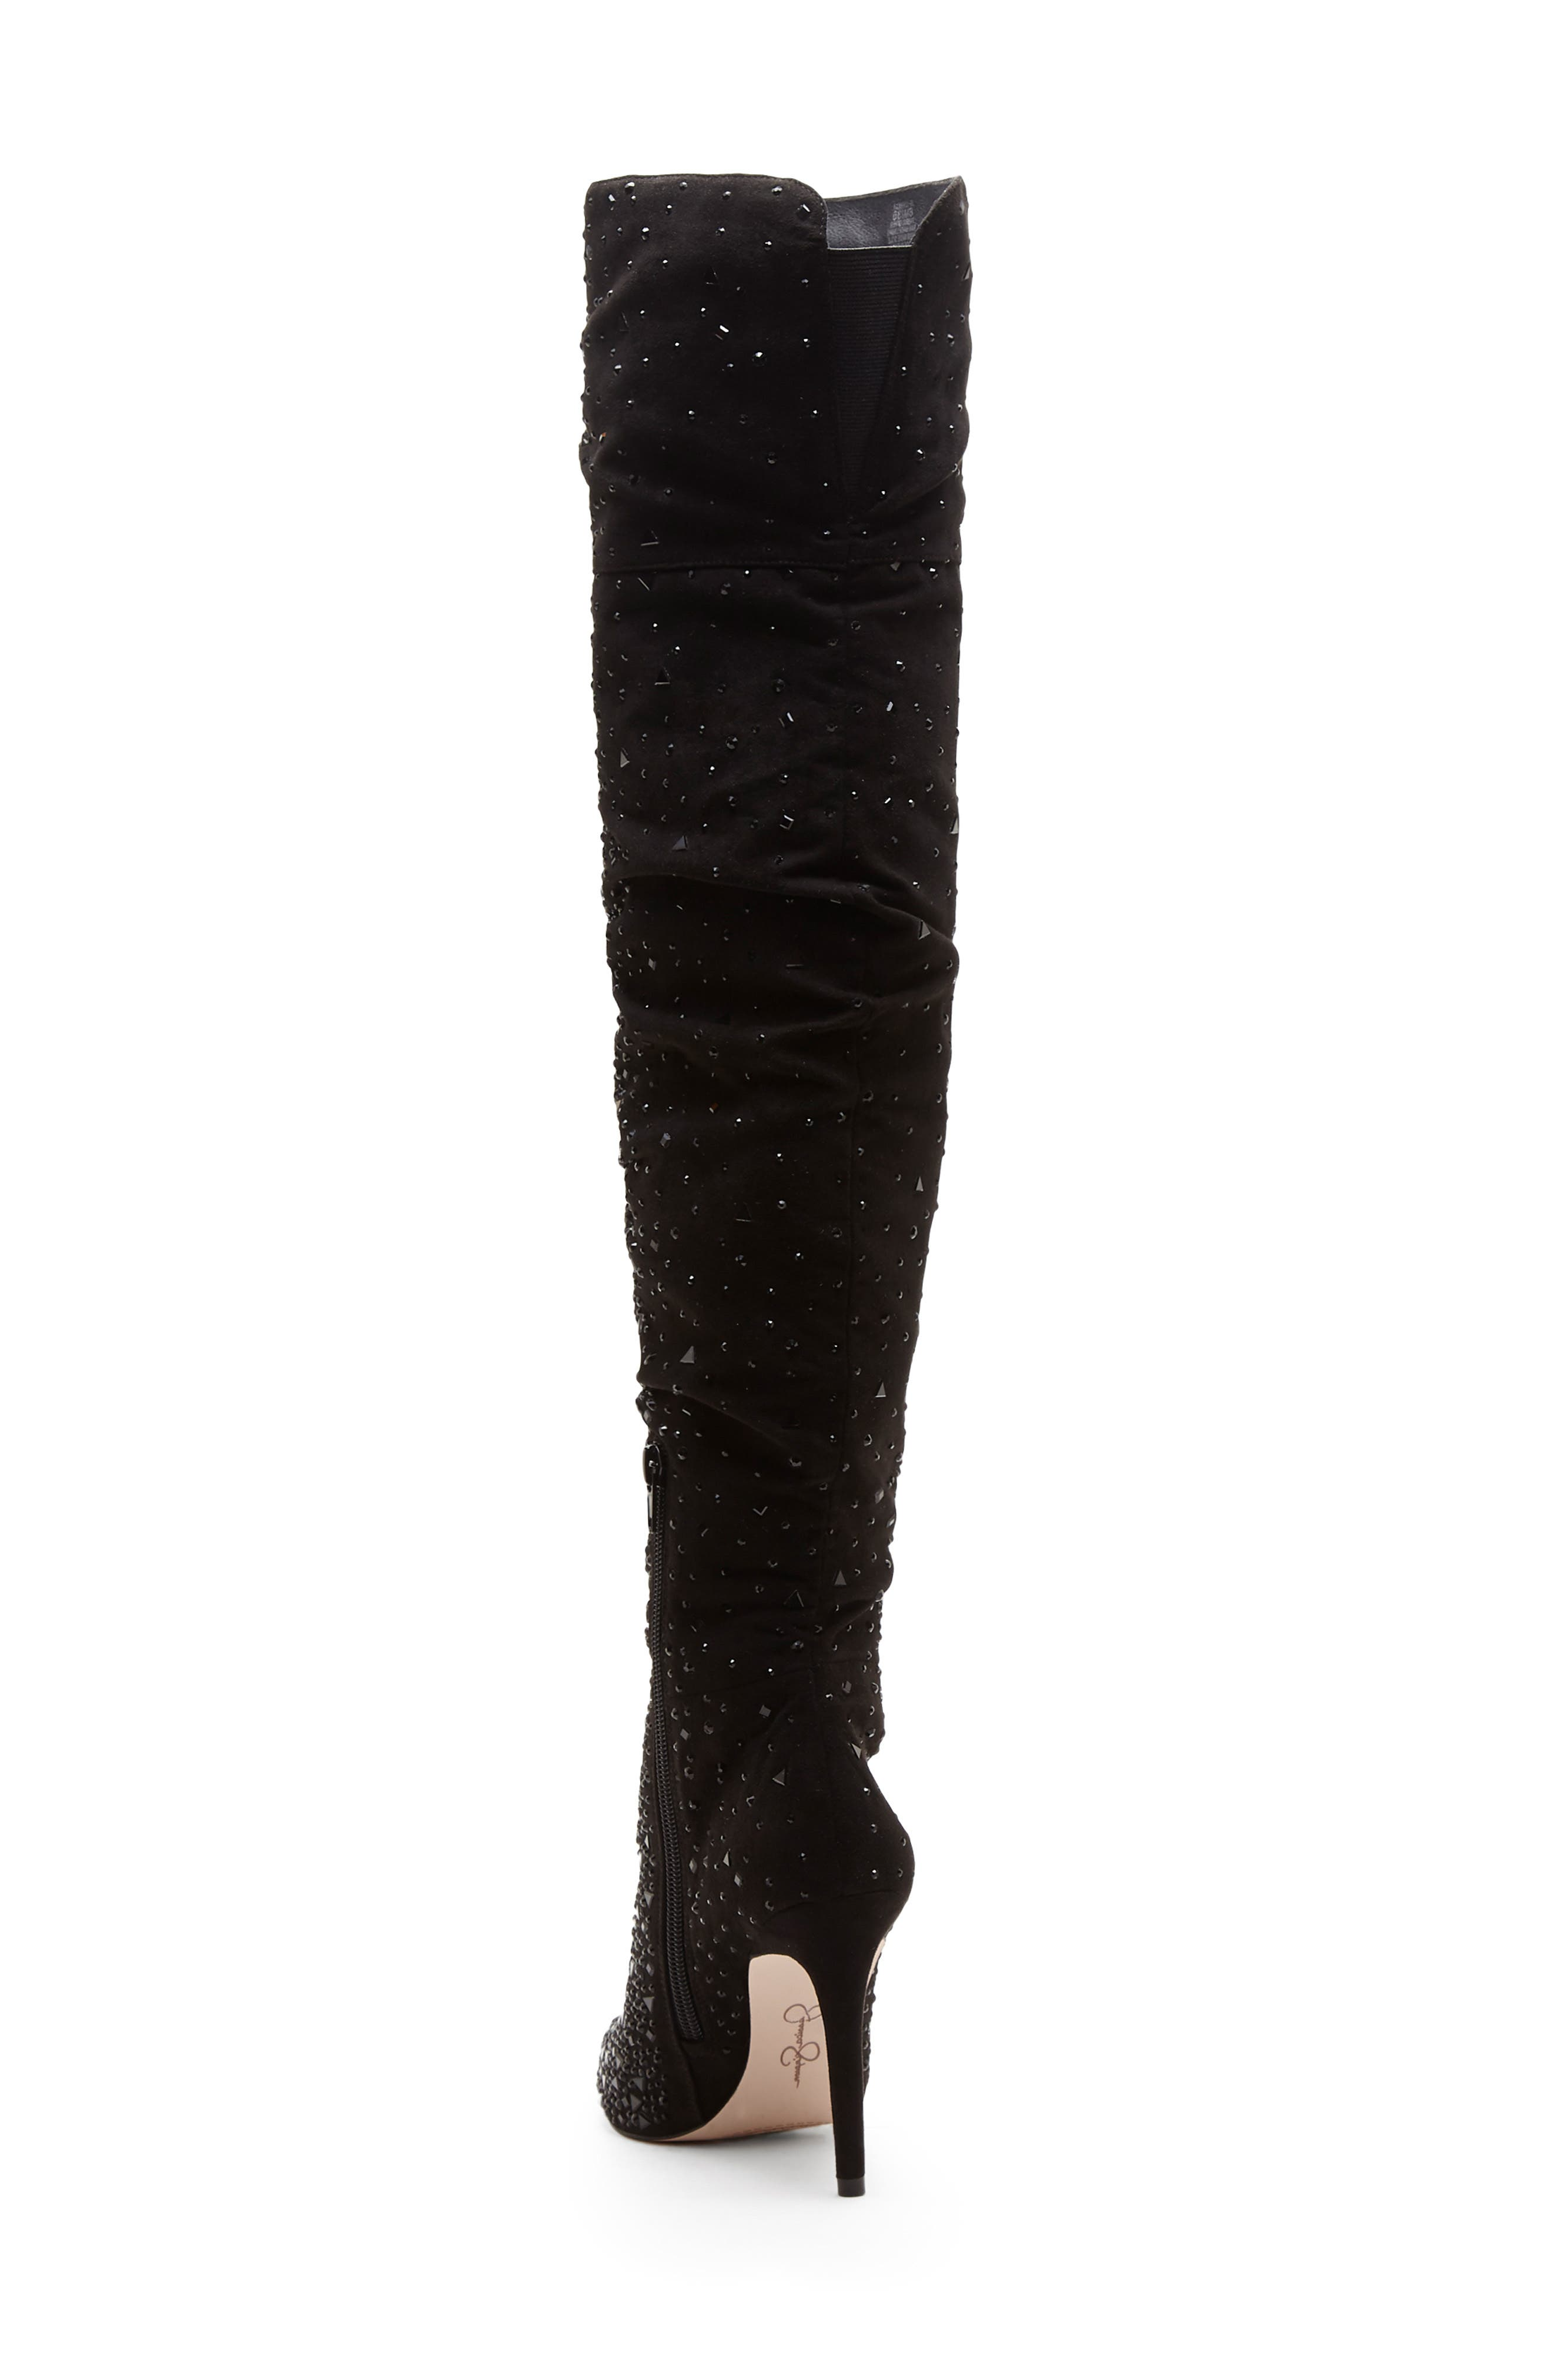 Luxella Over the Knee Boot,                             Alternate thumbnail 2, color,                             BLACK SPARKLES